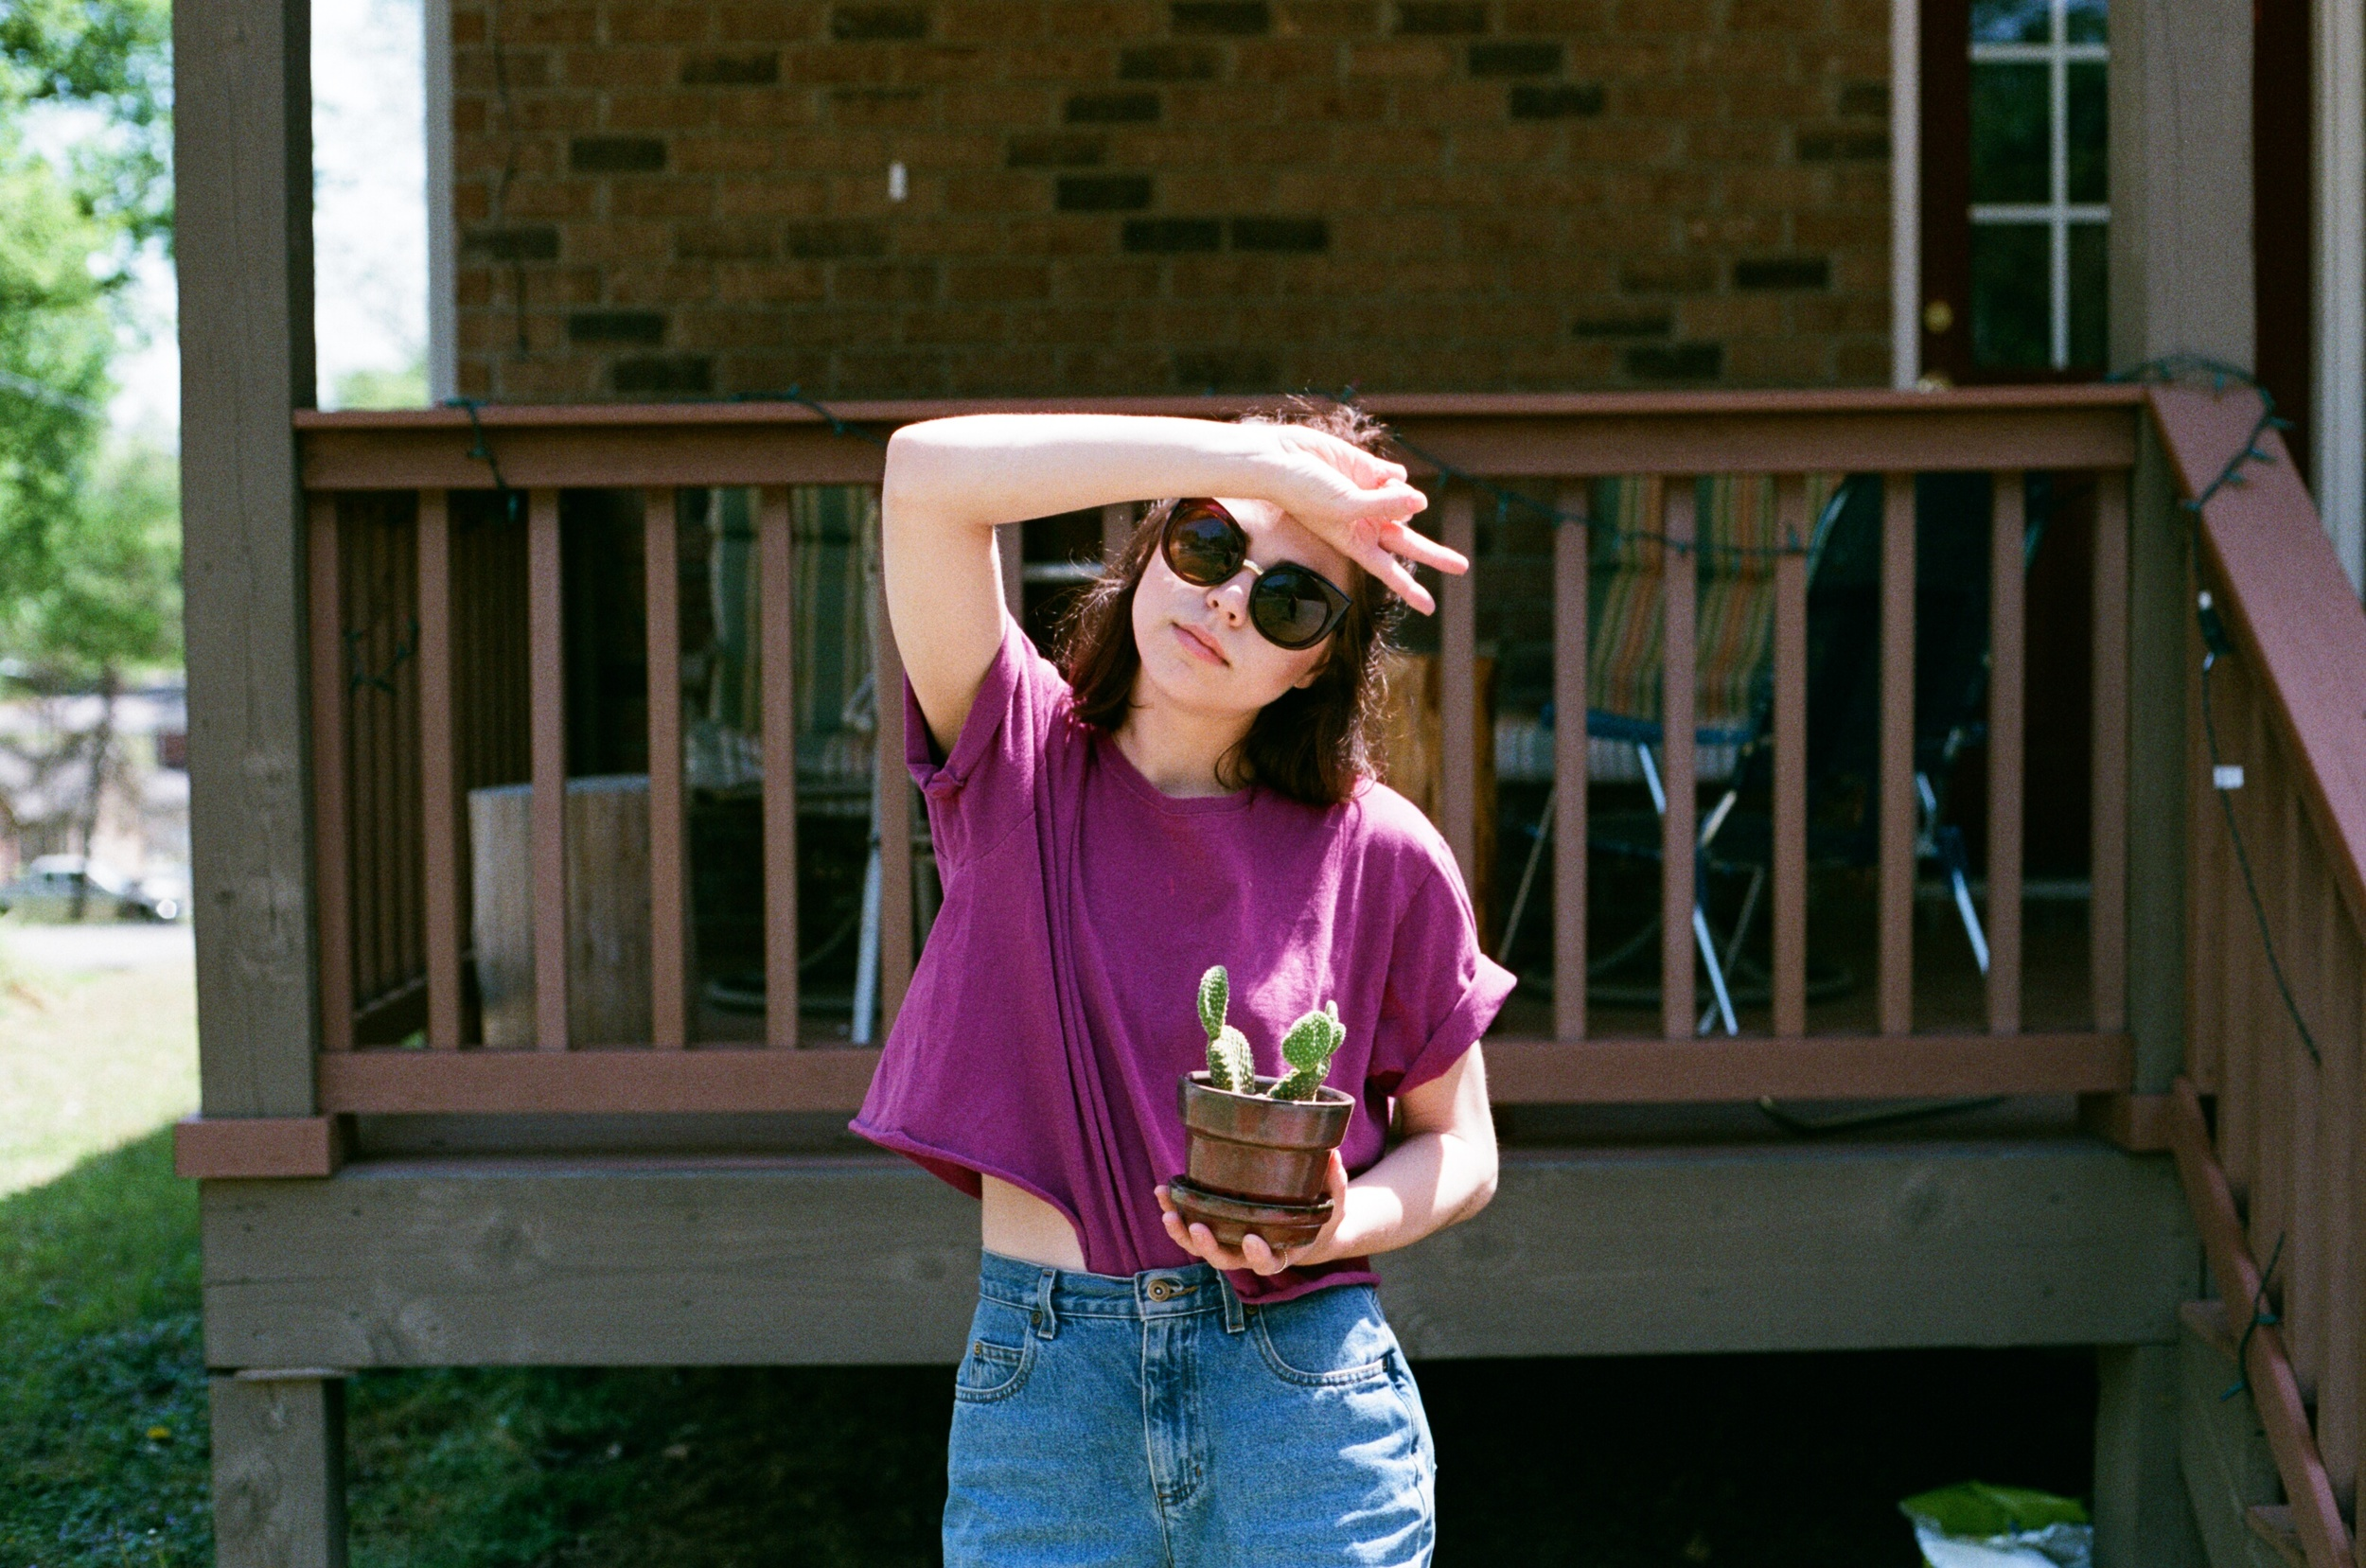 Felt good to be back home with Ginger and Taylor's Cactus (she had one exposure left on the roll)